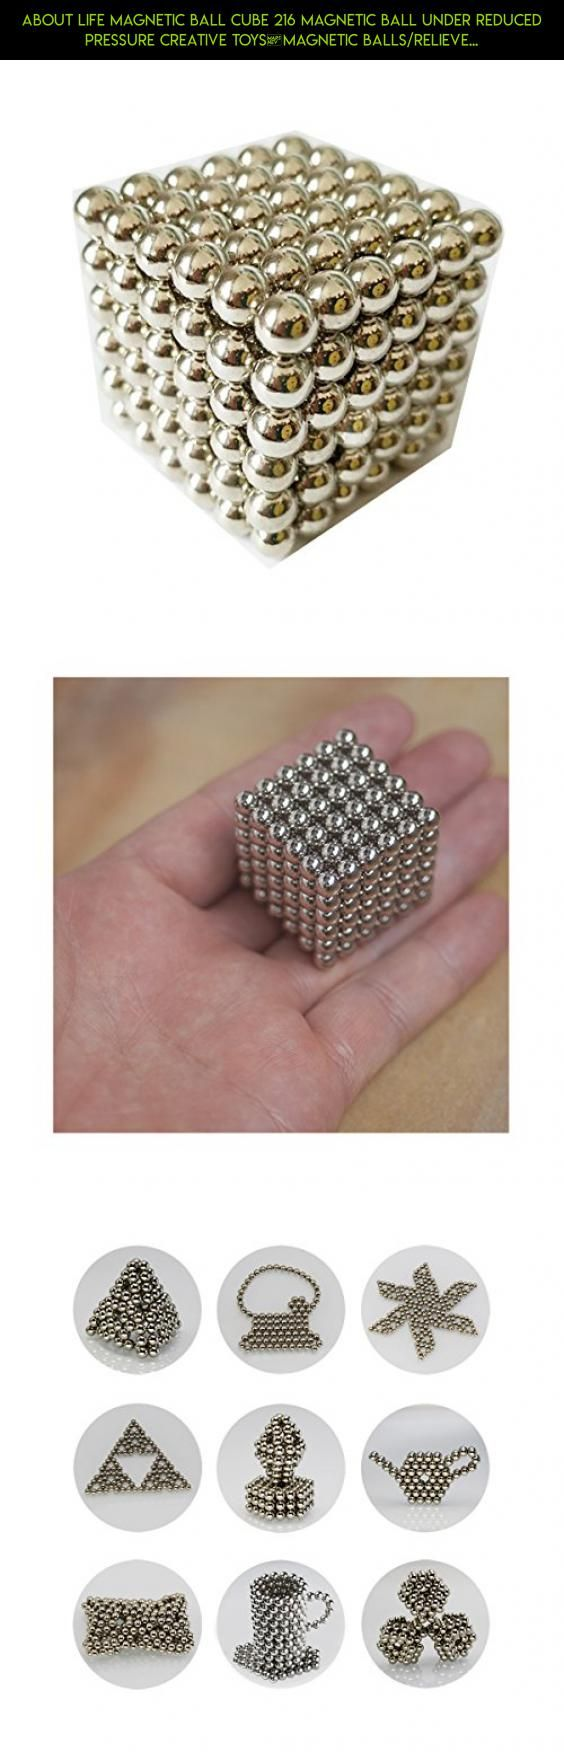 About Life Magnetic Ball Cube 216 Magnetic Ball Under Reduced Pressure Creative Toys,Magnetic Balls/Relieve stress #tech #refrigerator #products #plans #shopping #magnetic #kit #balls #racing #gadgets #fpv #camera #drone #technology #parts